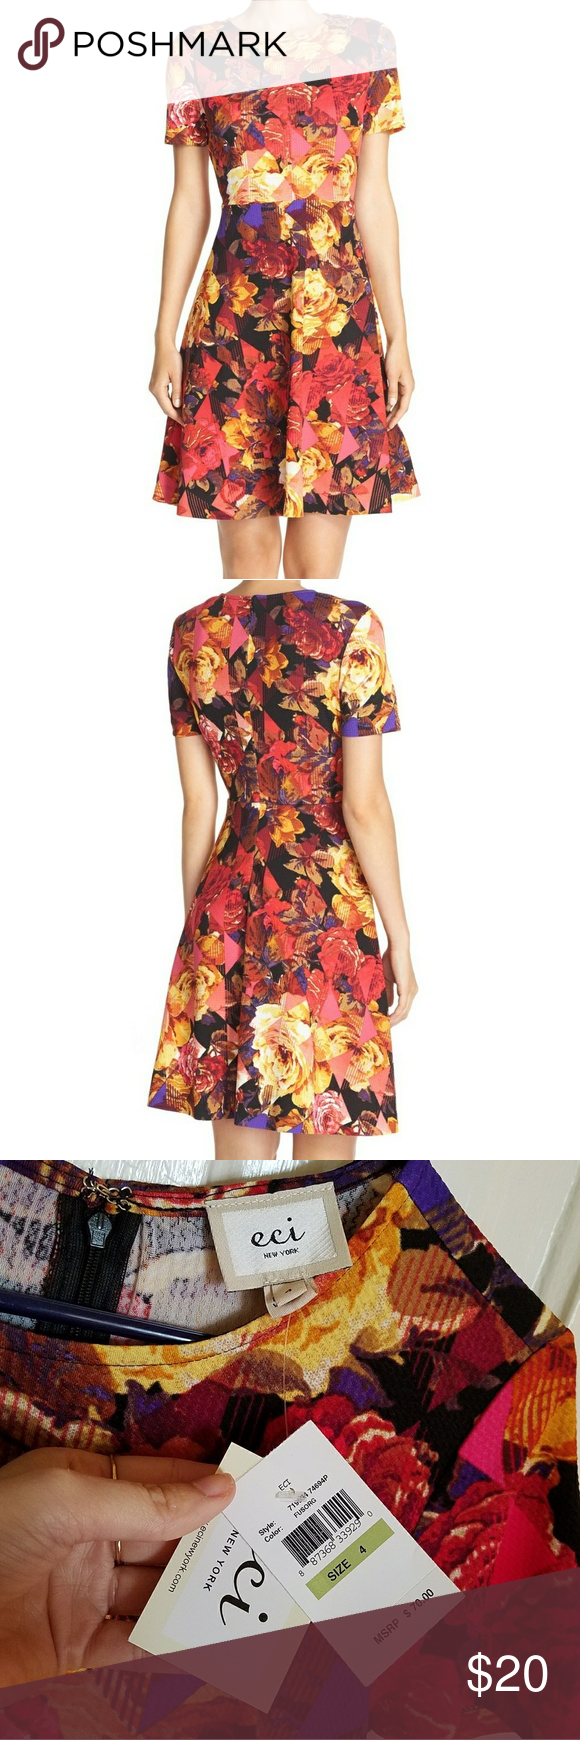 Fit and flare dress Floral fit-and-flare dress by ECI. Abstract floral pattern. Stretchy, lightweight, comfortable material. Hits above knee. Never worn. Size 4, or 34.5/27/37. Can post more photos or measurements if needed. ECI Dresses Mini